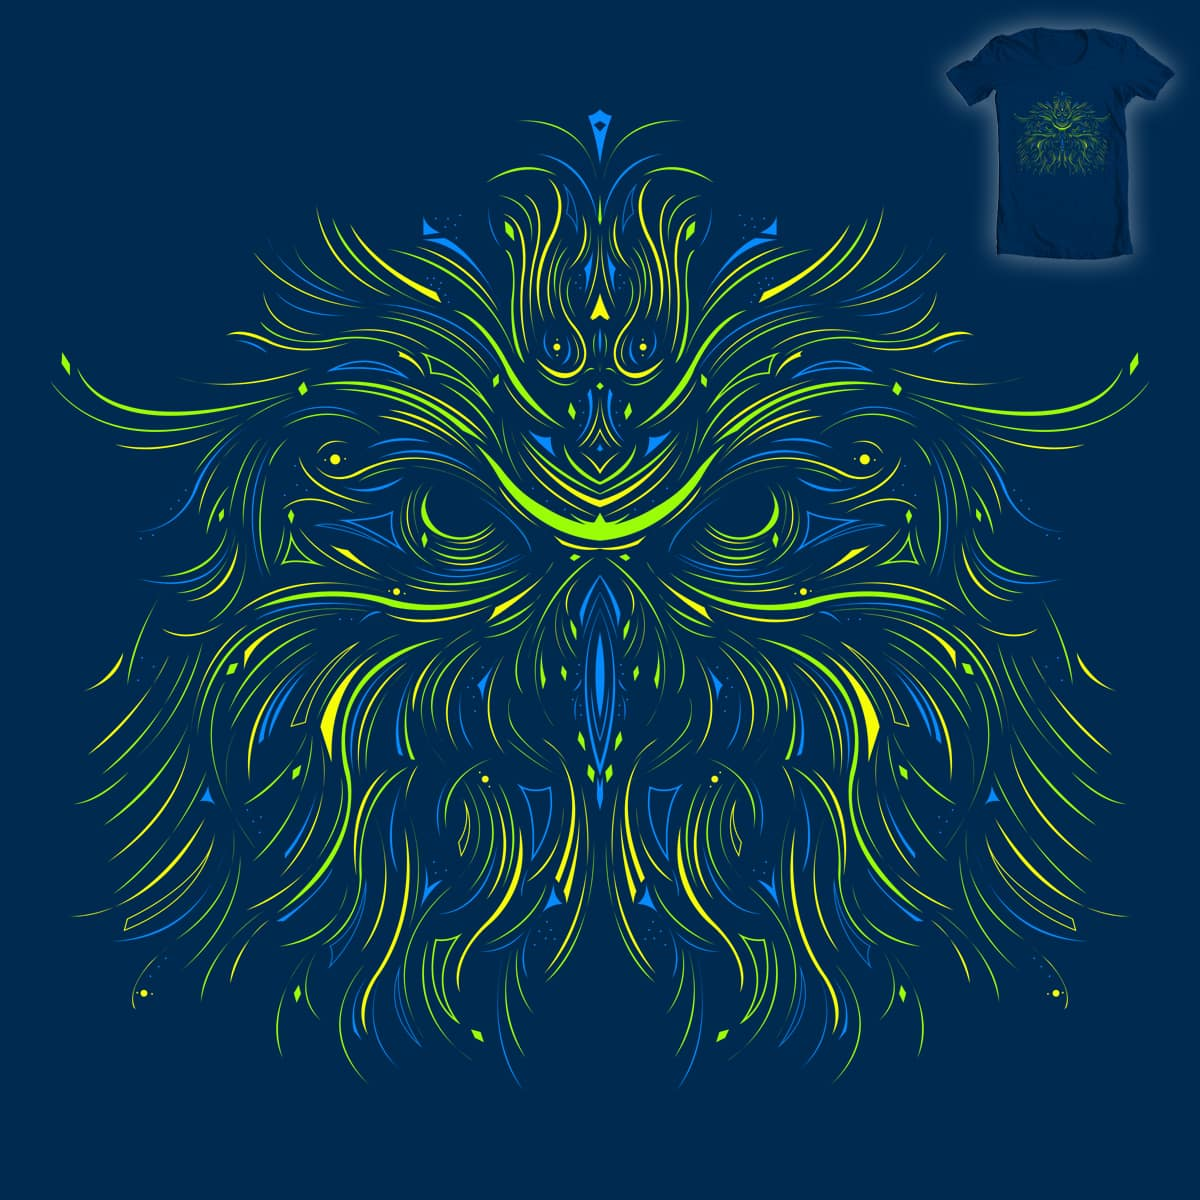 Opticowl by Evan_Luza on Threadless